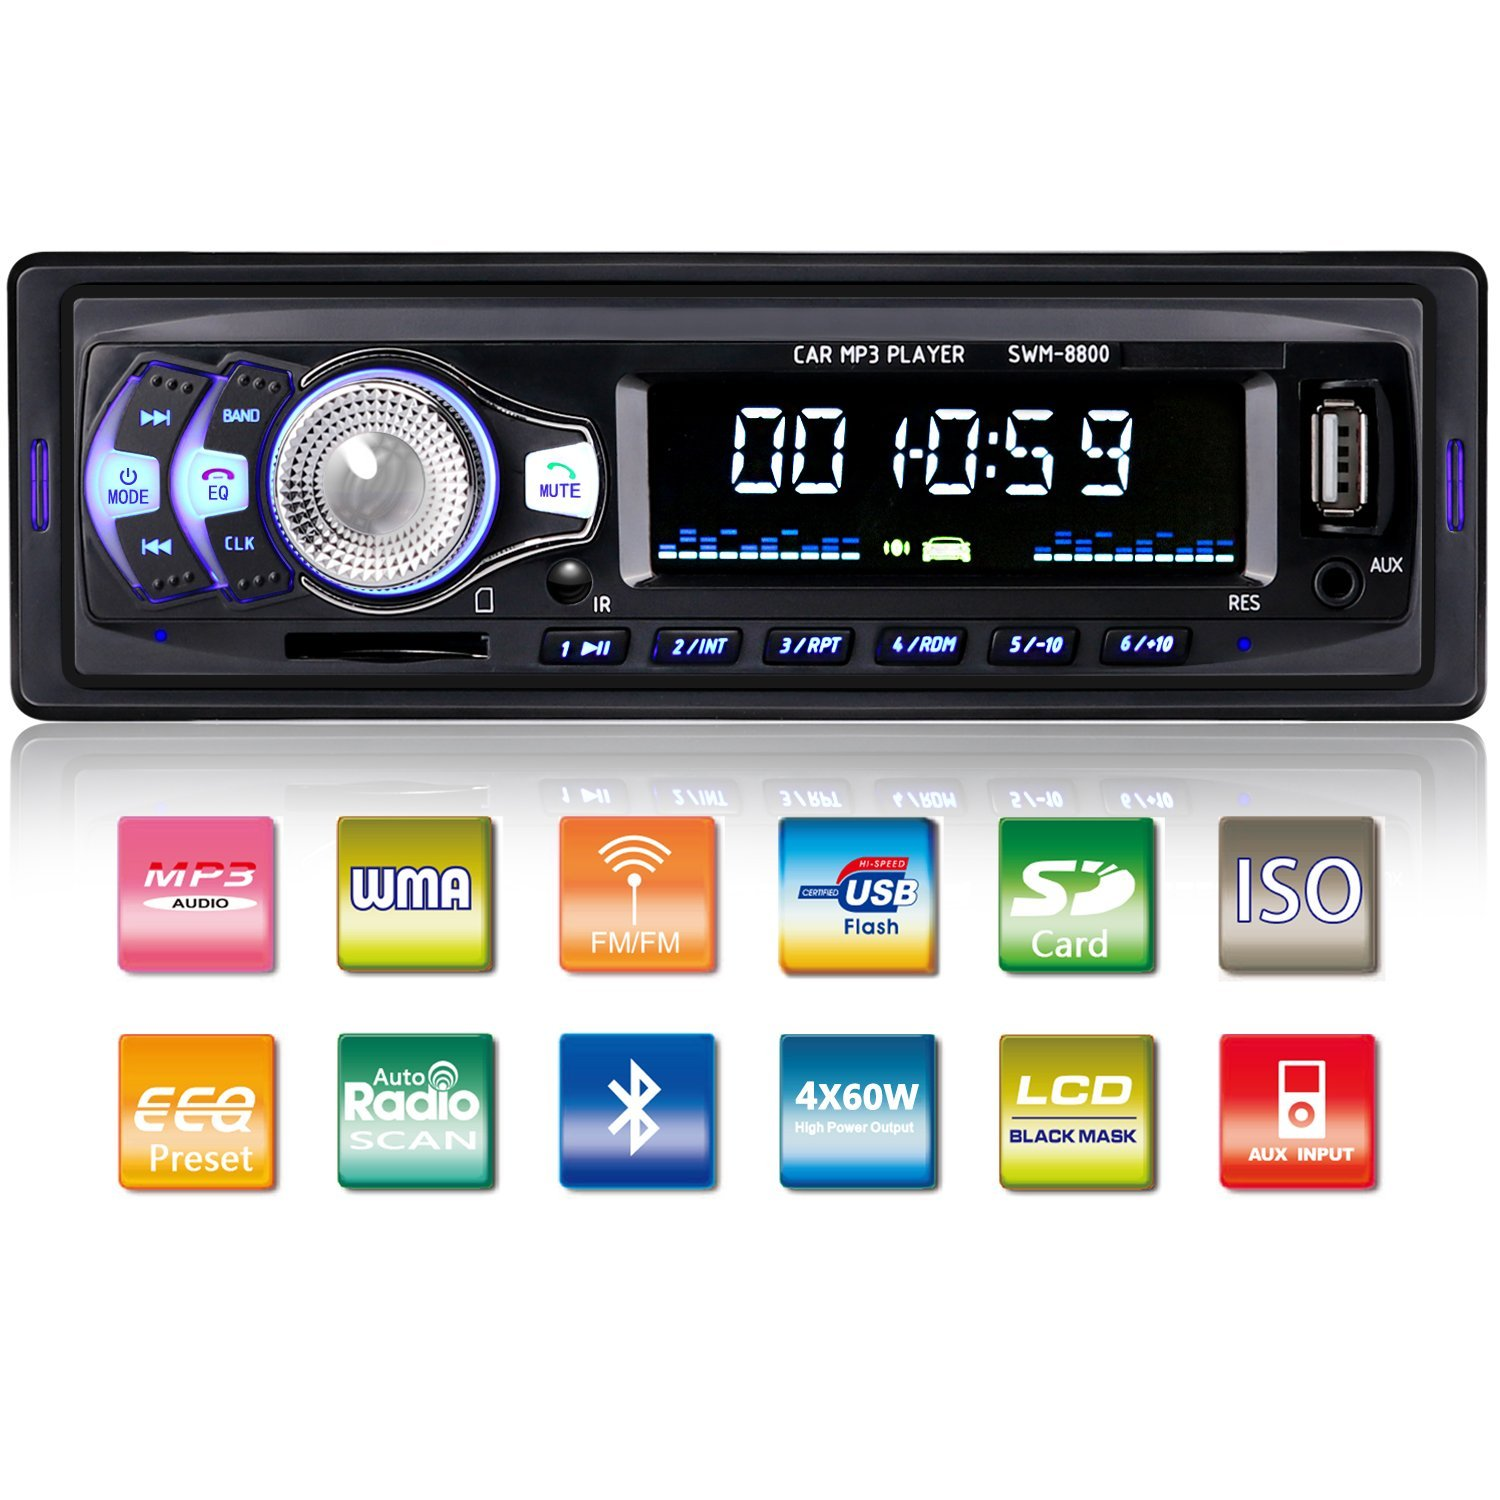 Tagital Car Stereo with Bluetooth In-Dash Single Din Car Radio, Car MP3 Player USB/SD/AUX/Wireless Remote Control